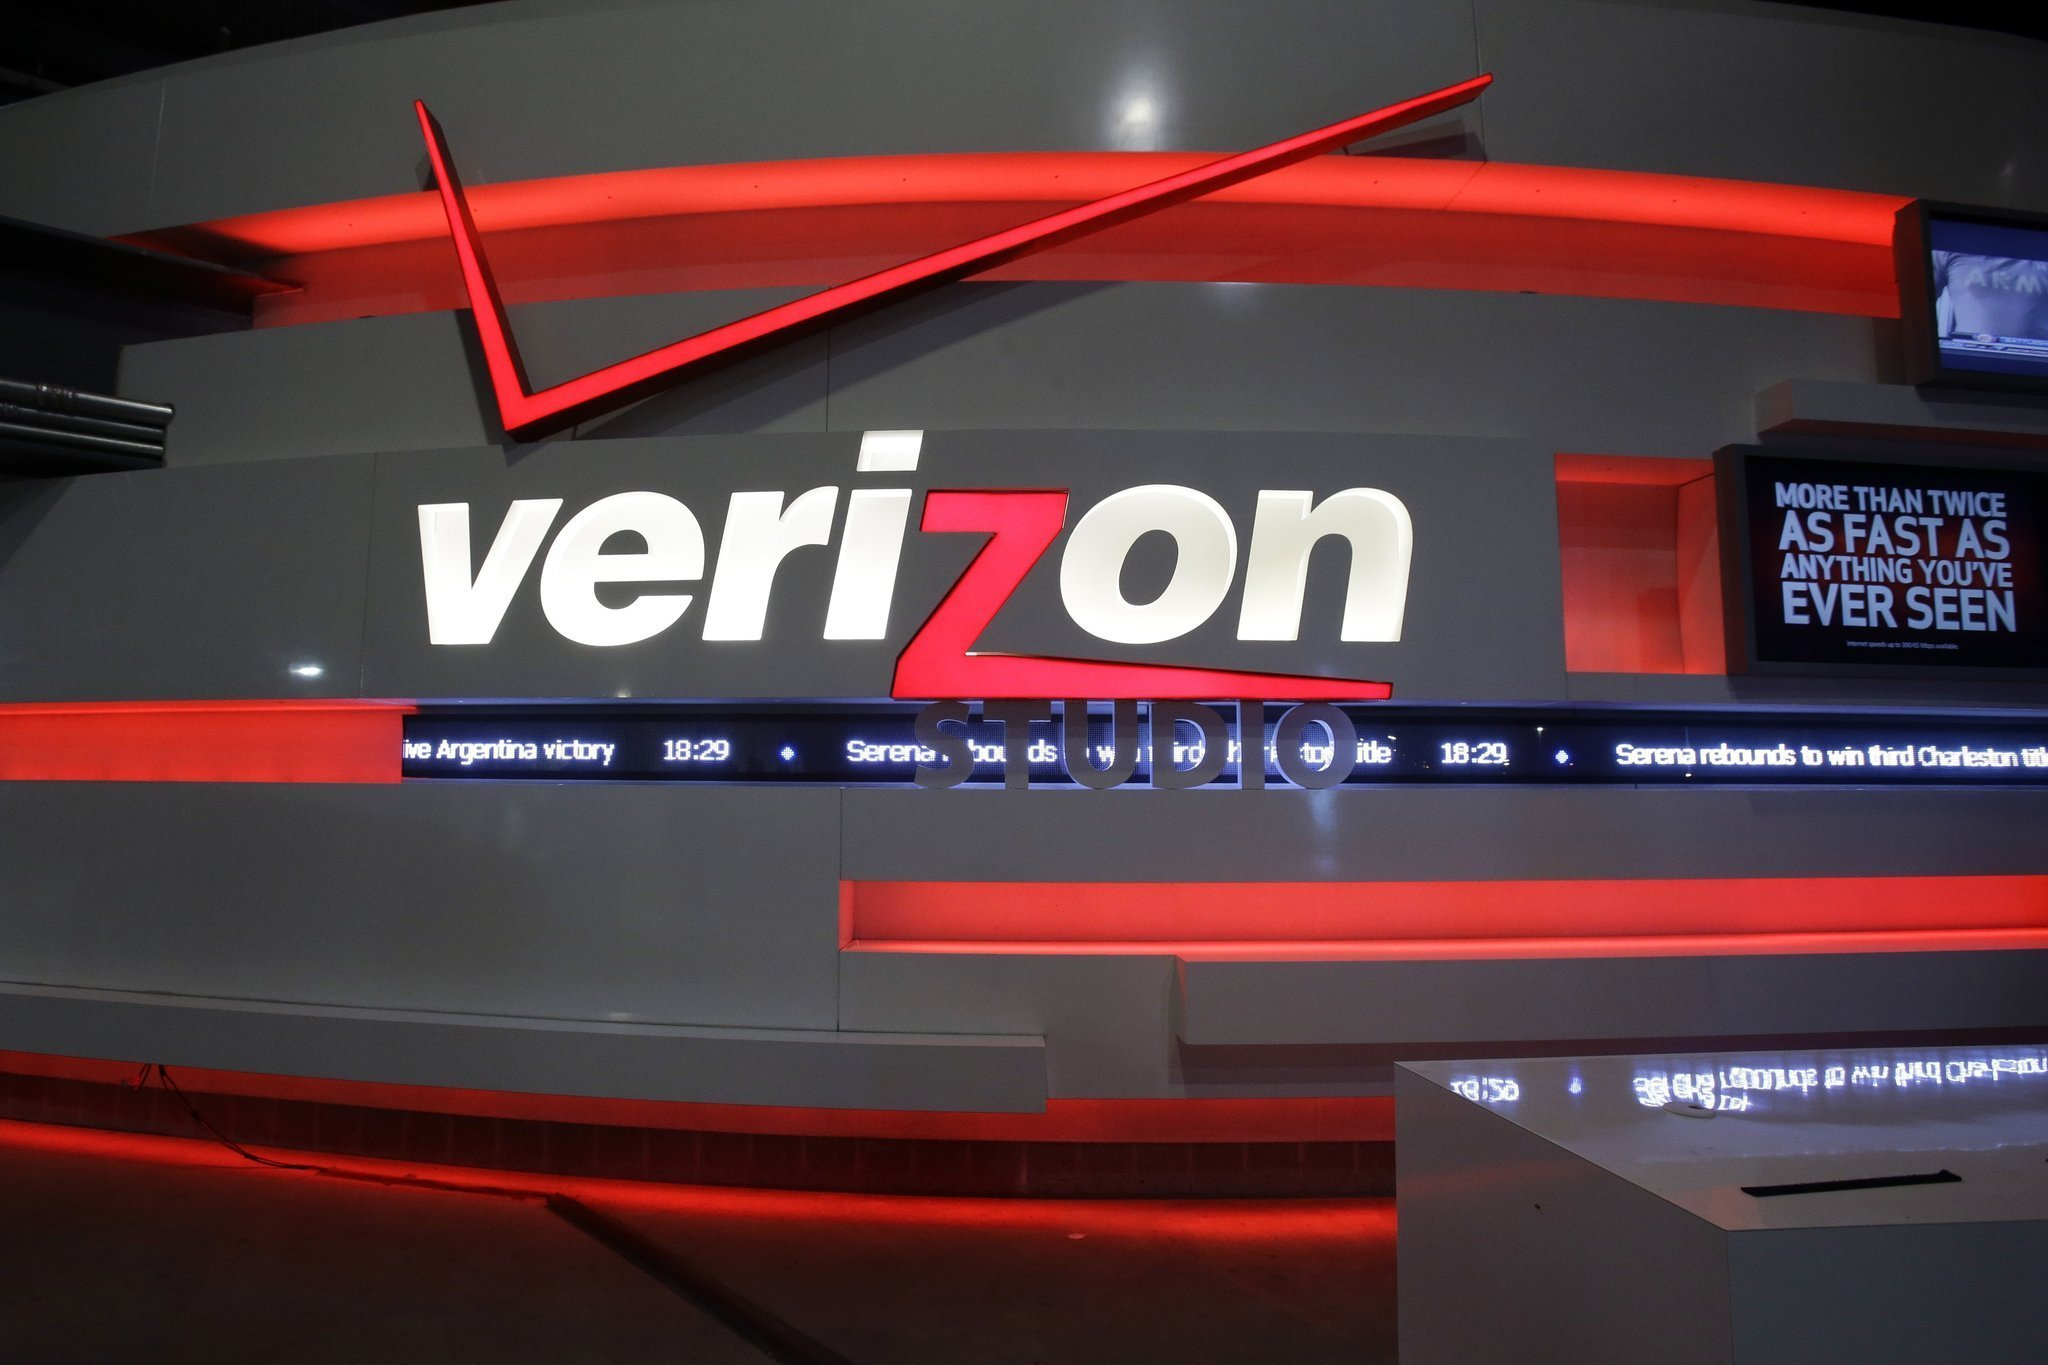 Verizon fios nfl network channel number - Verizon Fios Nfl Network Channel Number 35